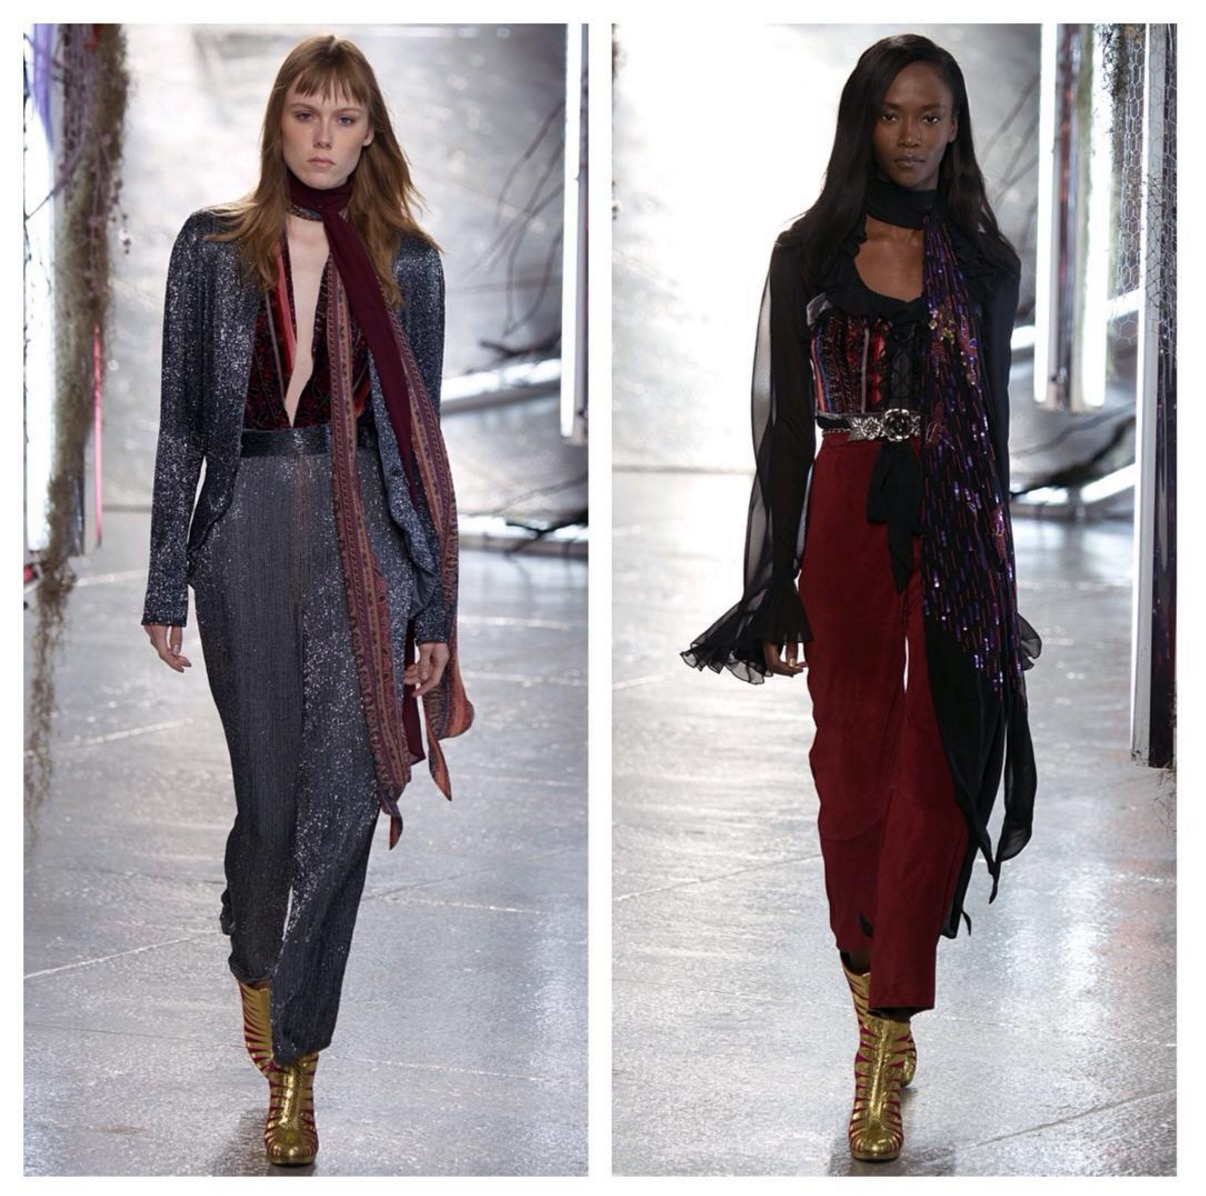 Soft bohemian looks from the Rodarte SS16 show. Both looks by luxelab Mentor Stylist and Kerastase tech educator Craig Wcislo. Lead hair by Odile Gilbert.